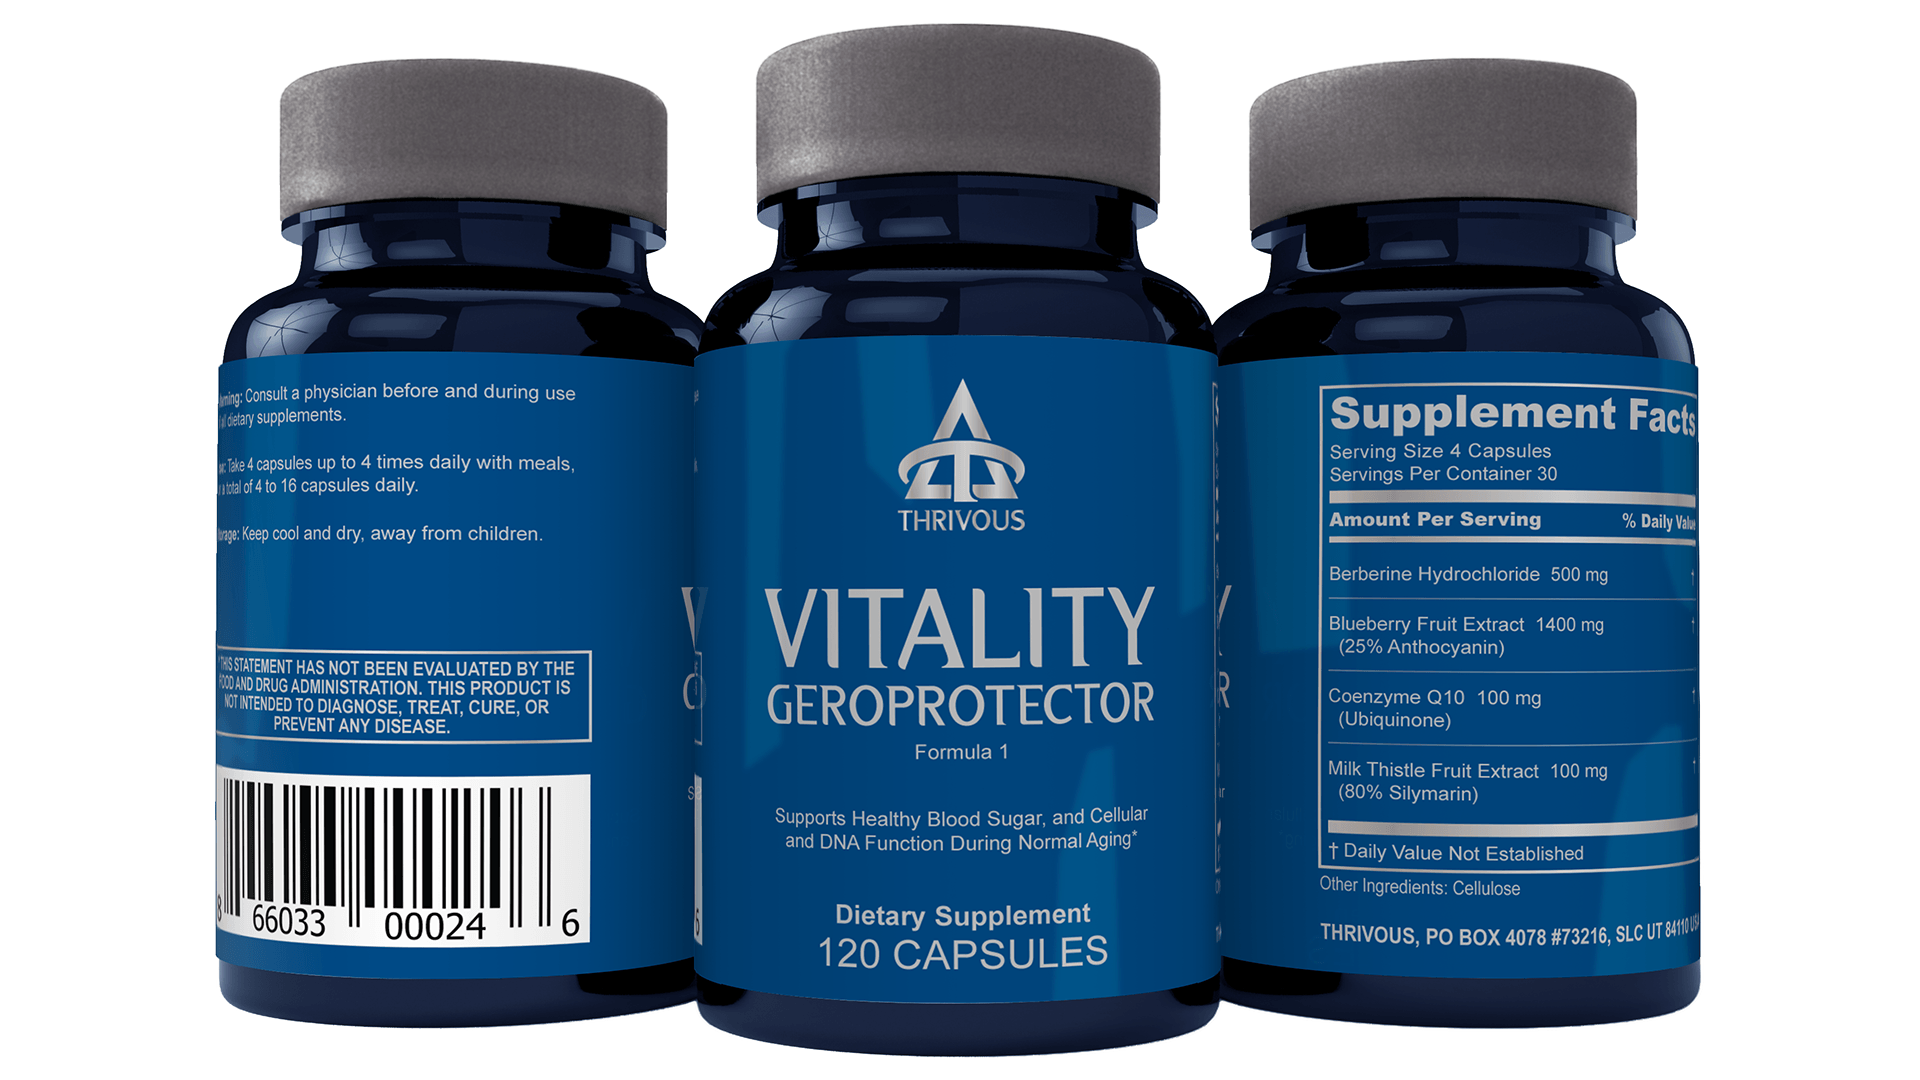 Thrivous Vitality Geroprotector